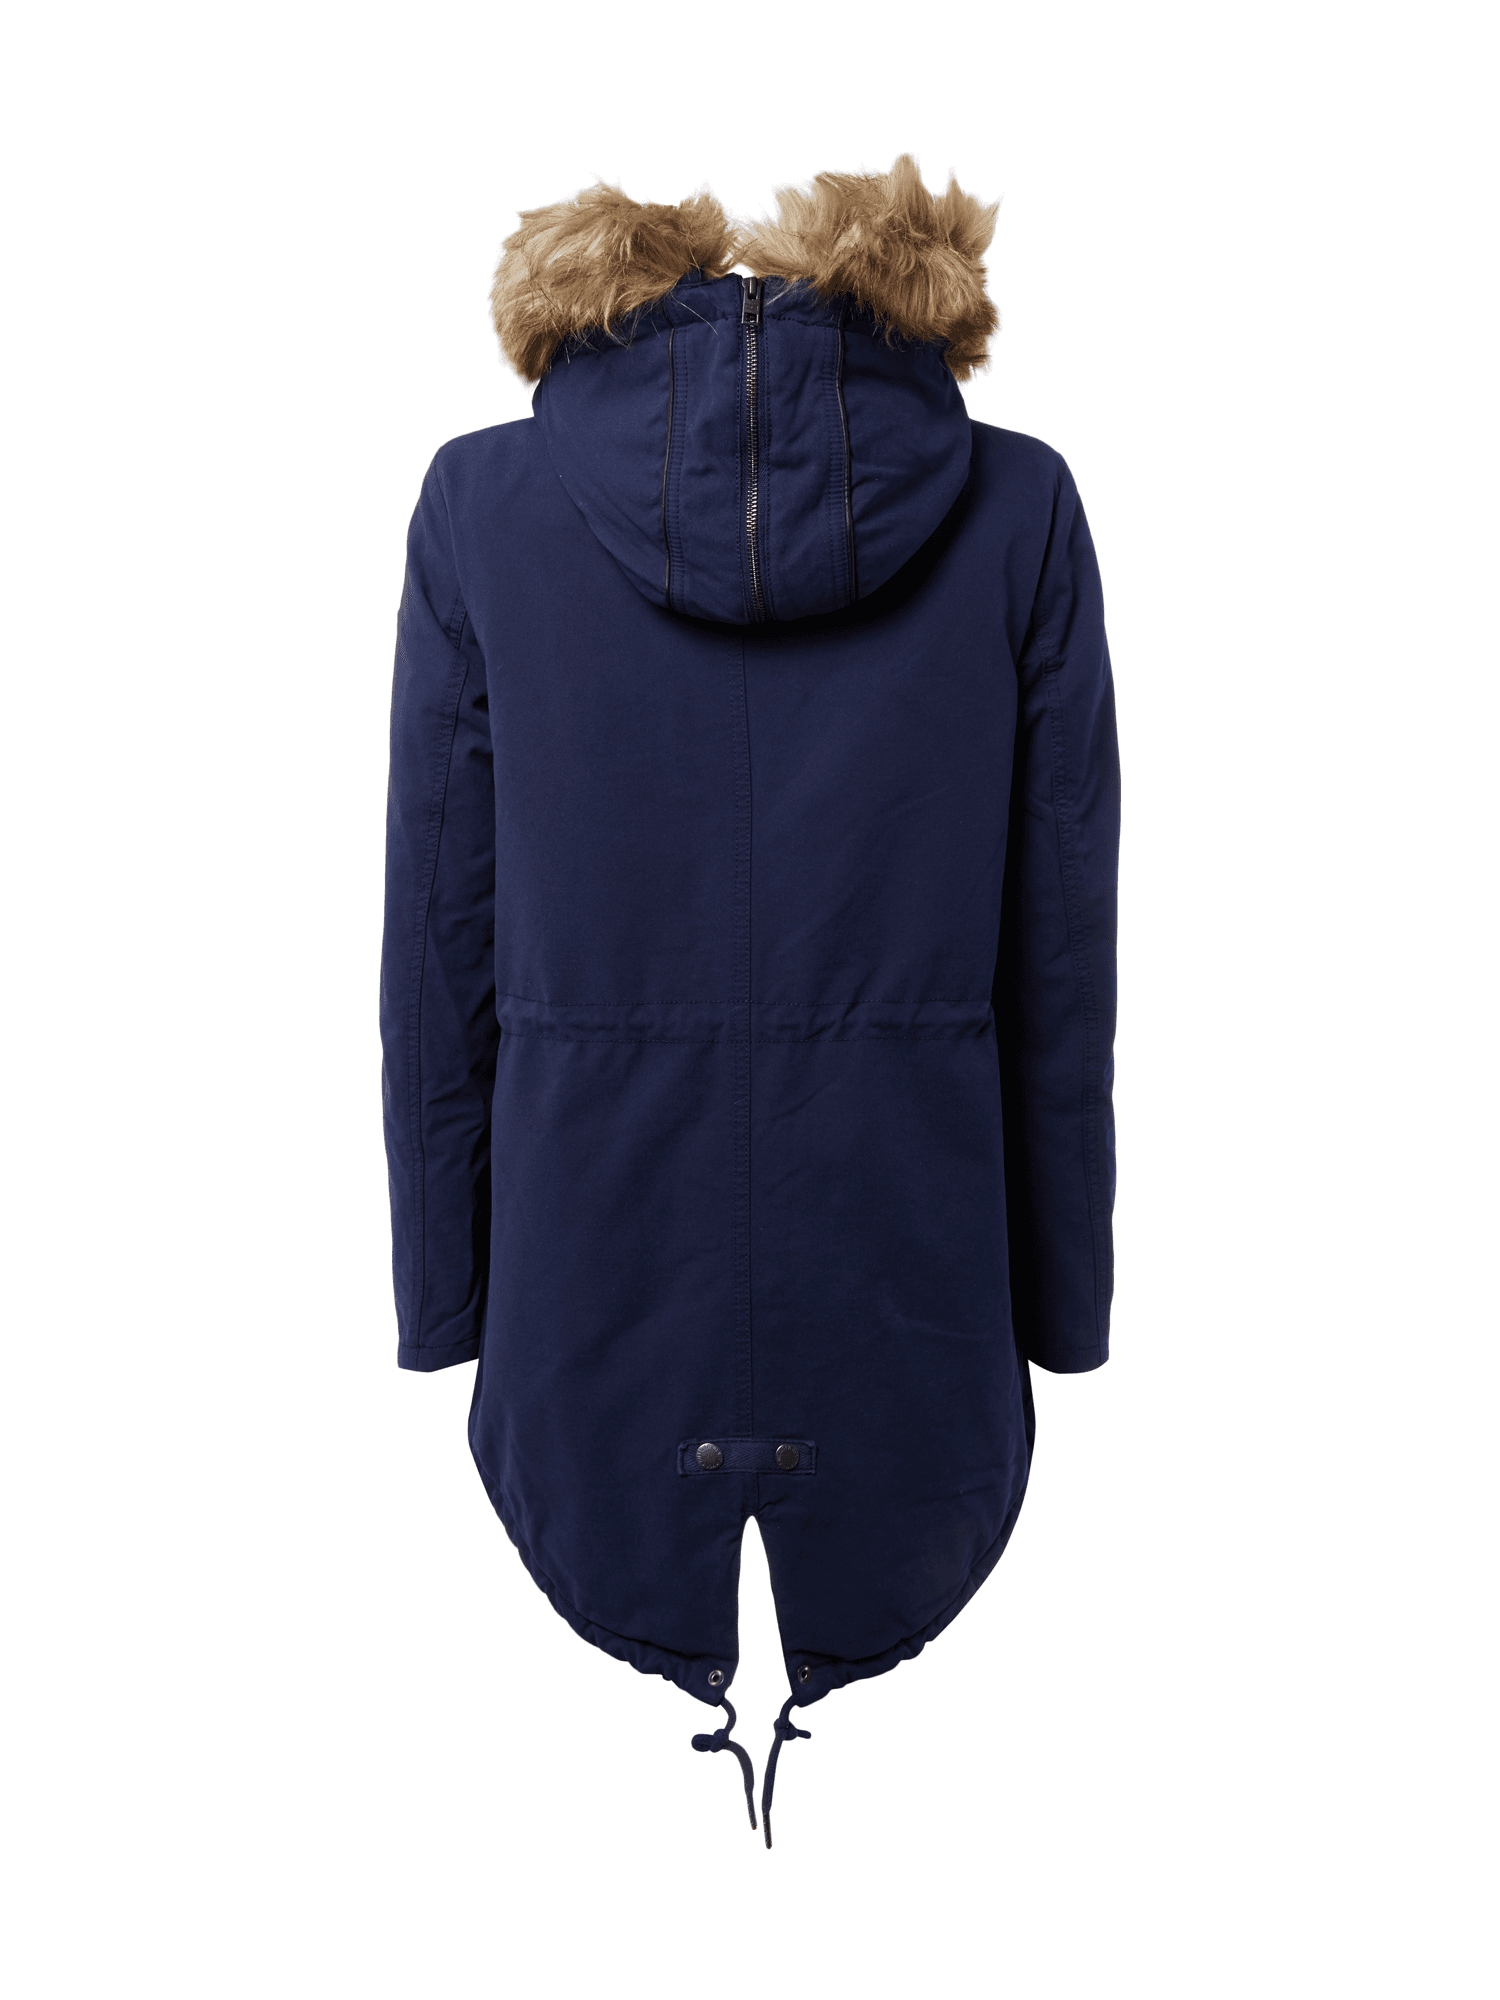 hilfiger denim parka wandelbarer kapuze teddyfell webpelz winterjacke damen neu ebay. Black Bedroom Furniture Sets. Home Design Ideas